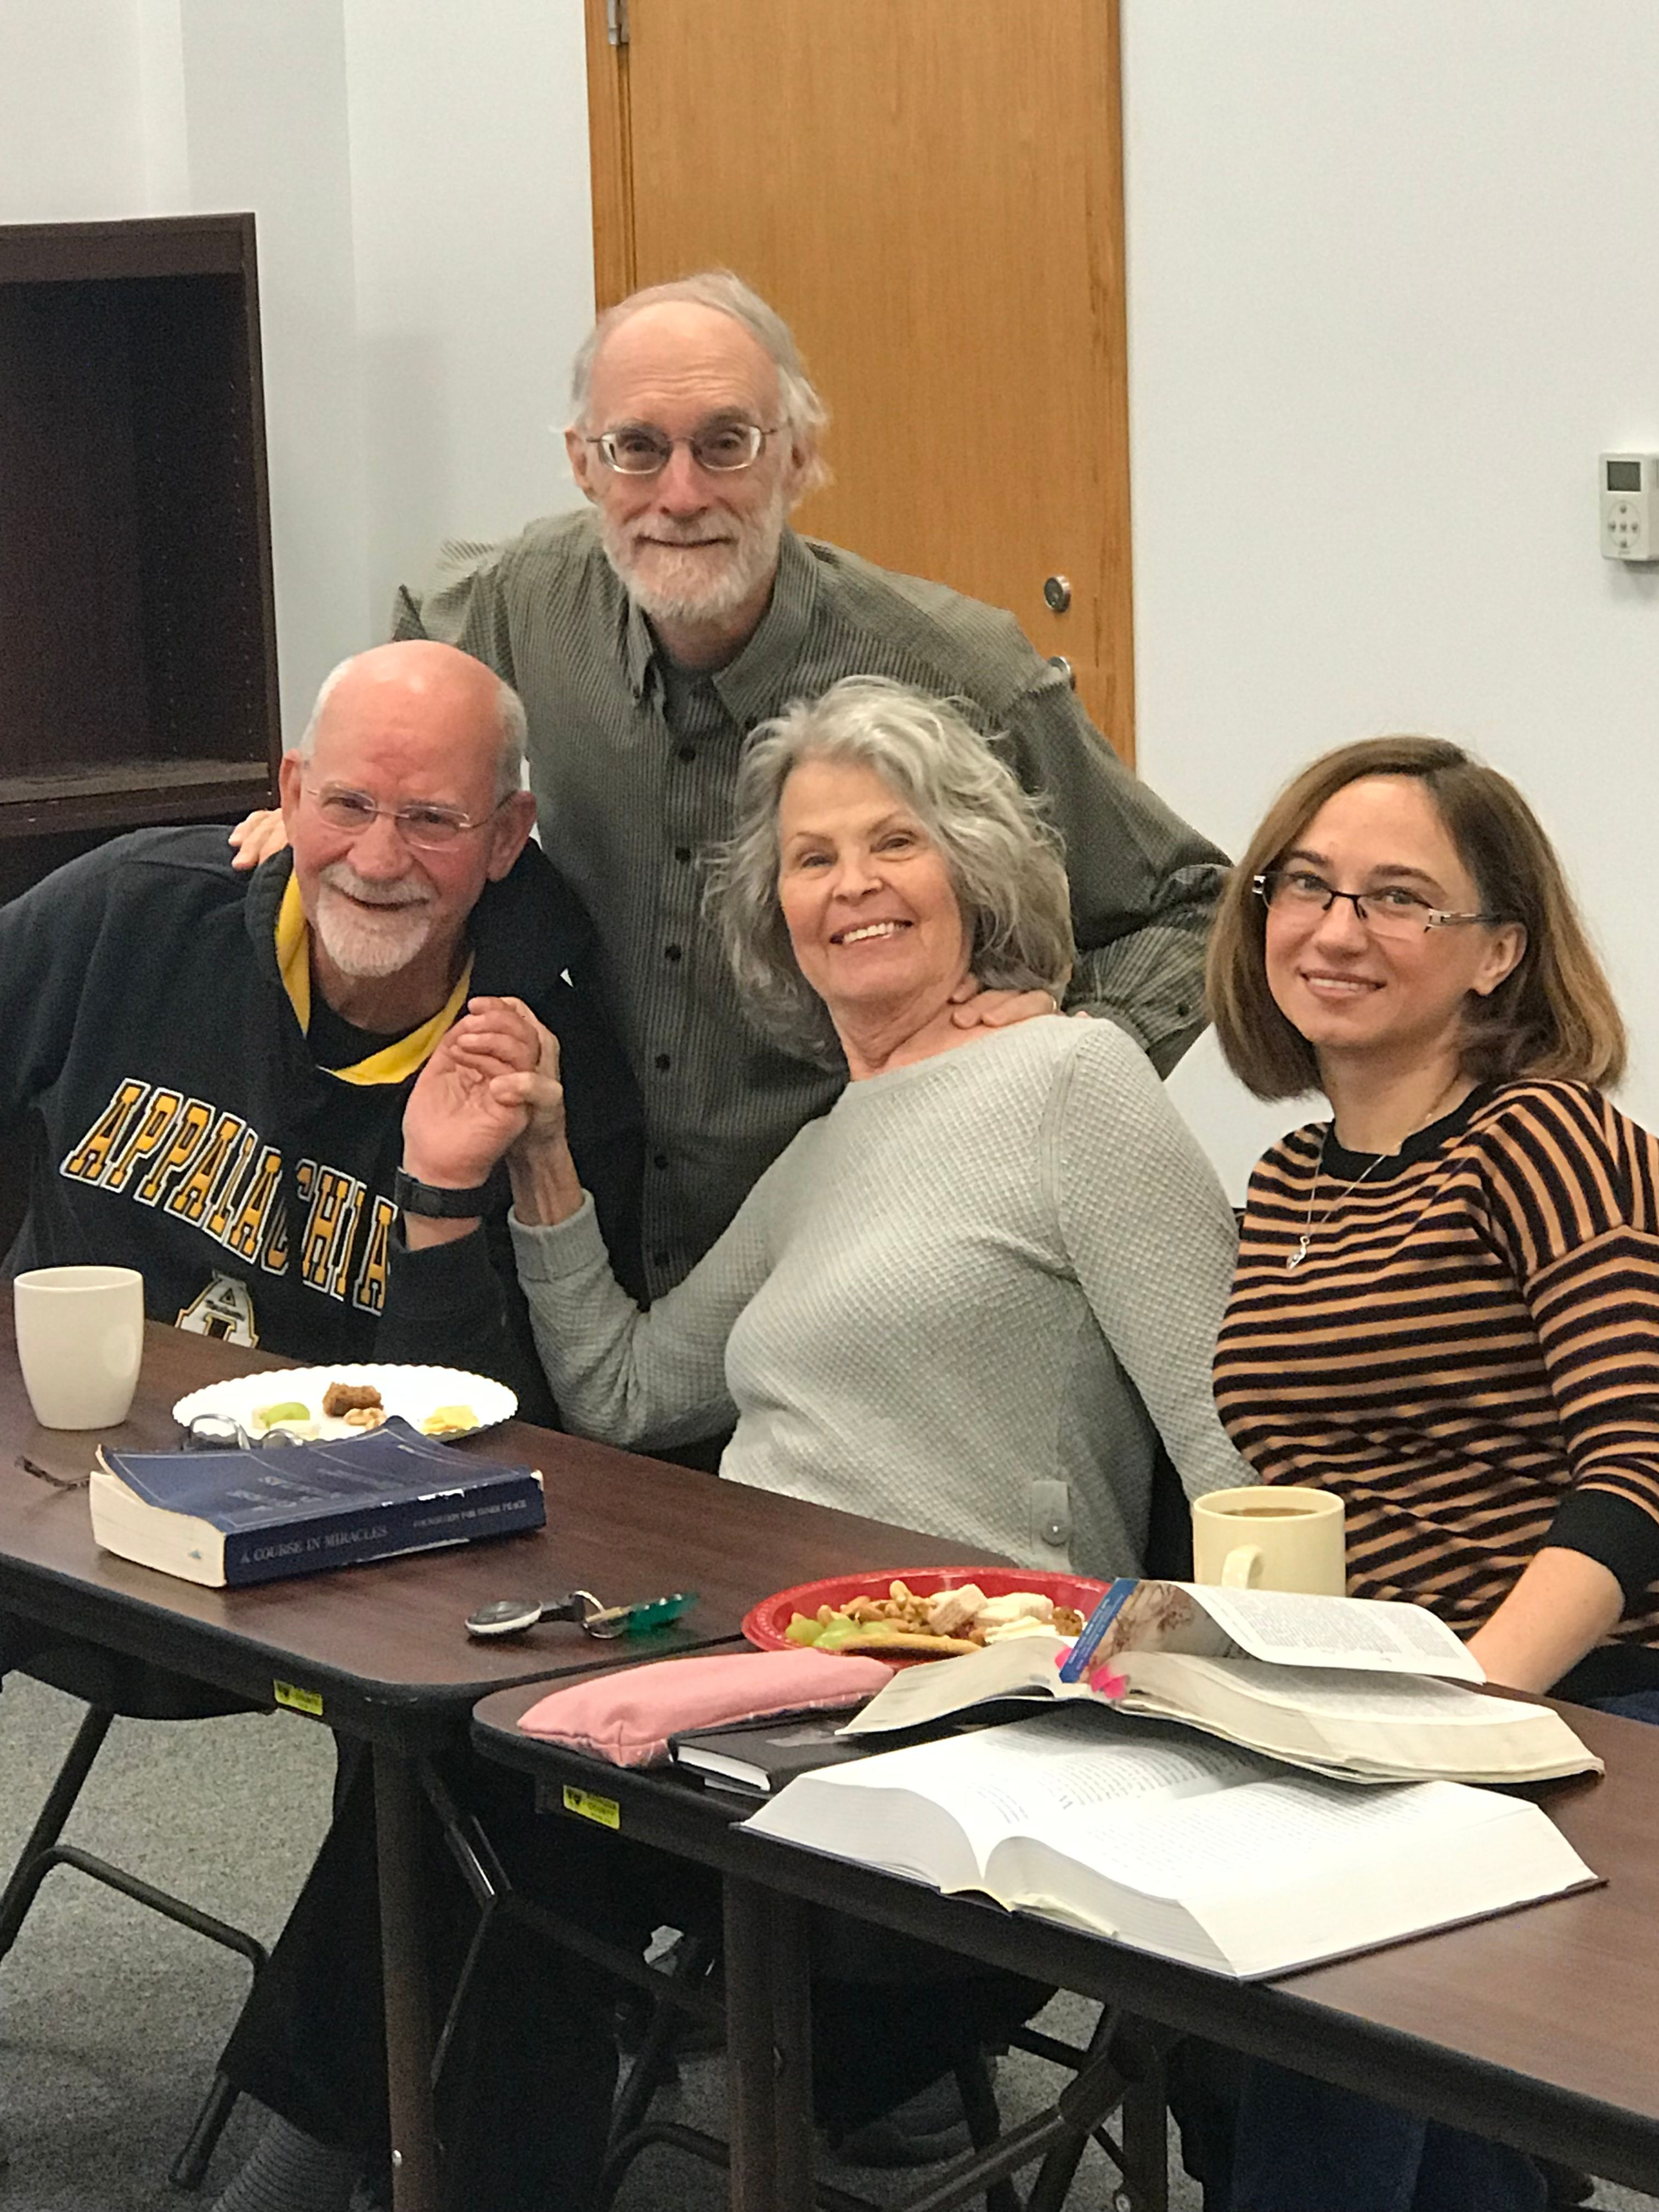 A Course in Miracles Study Group in Boone